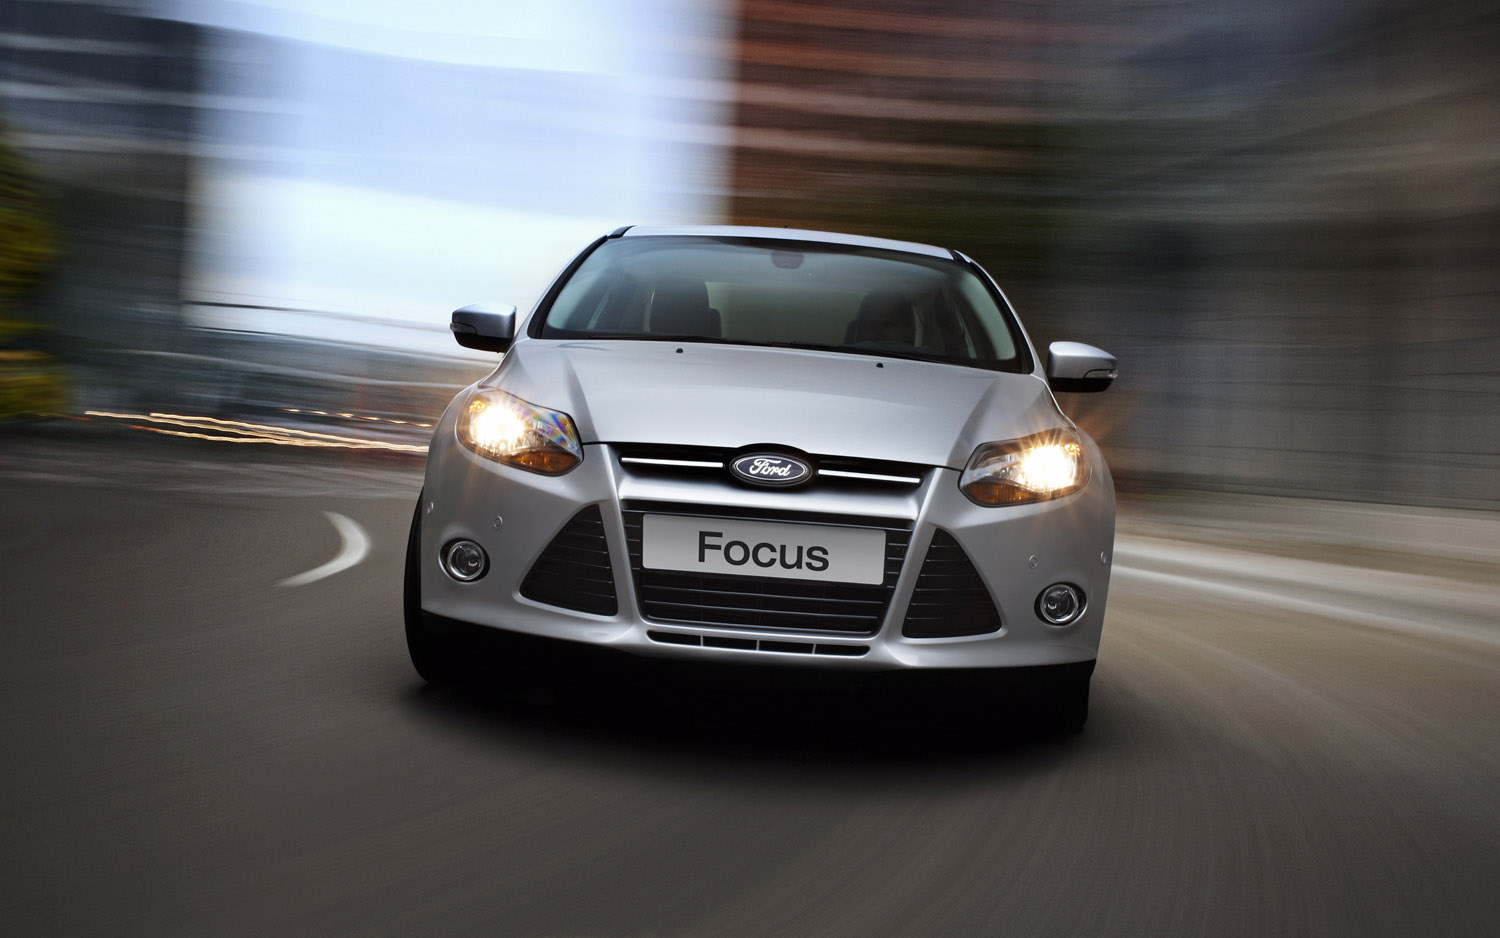 2013-ford-focus-dau-xe-front-view.jpg